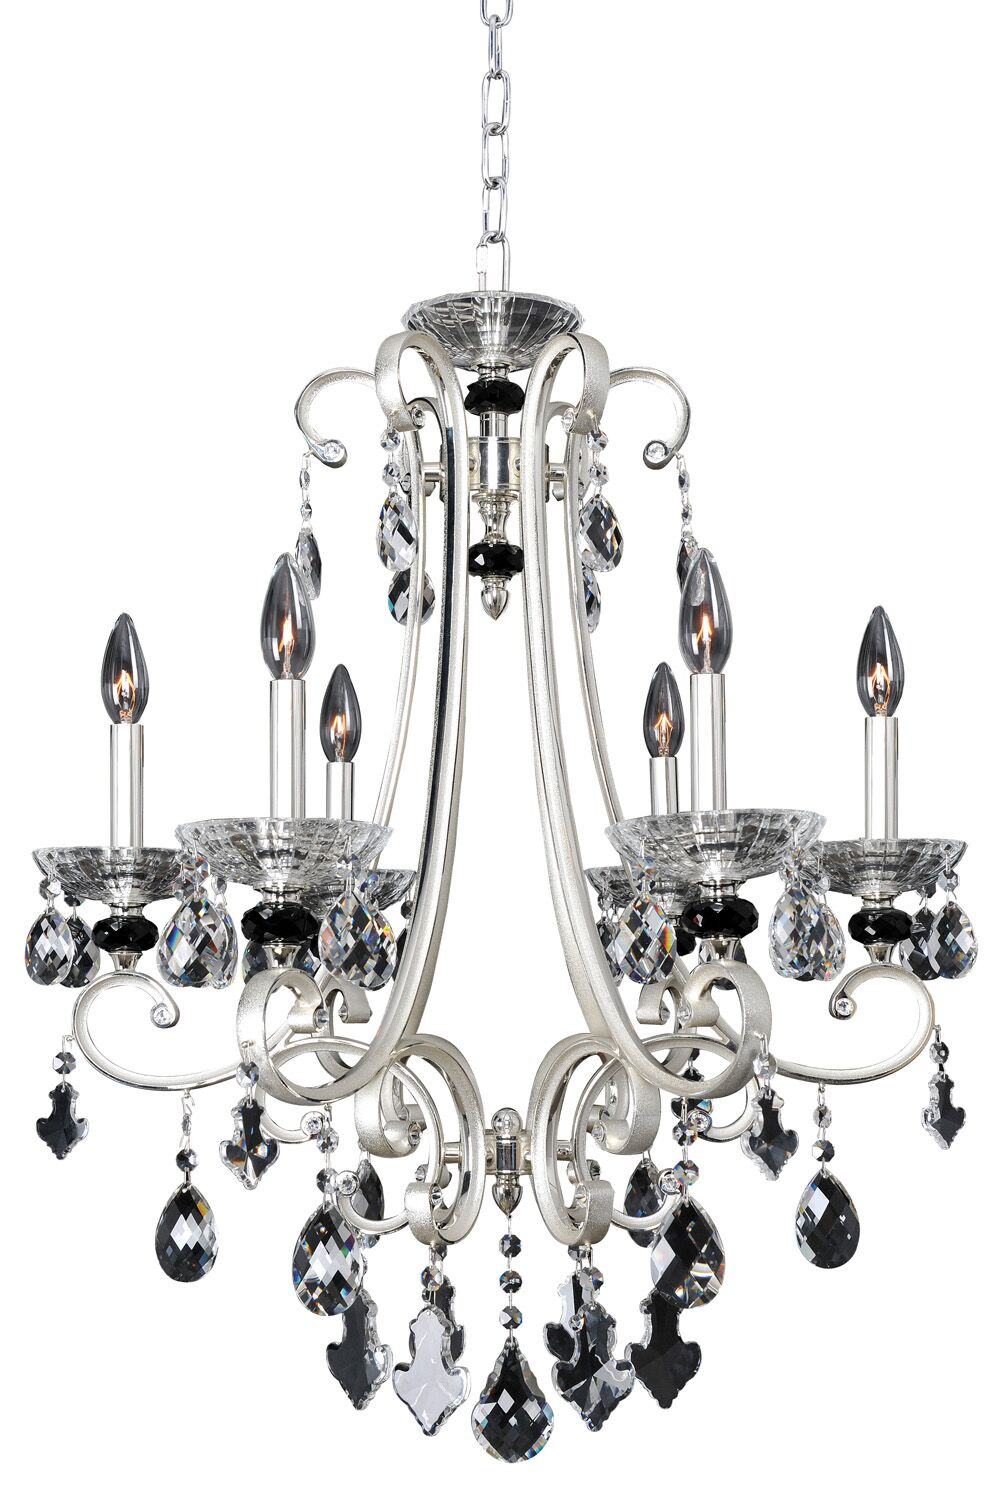 Bedetti 6-Light Candle Style Chandelier